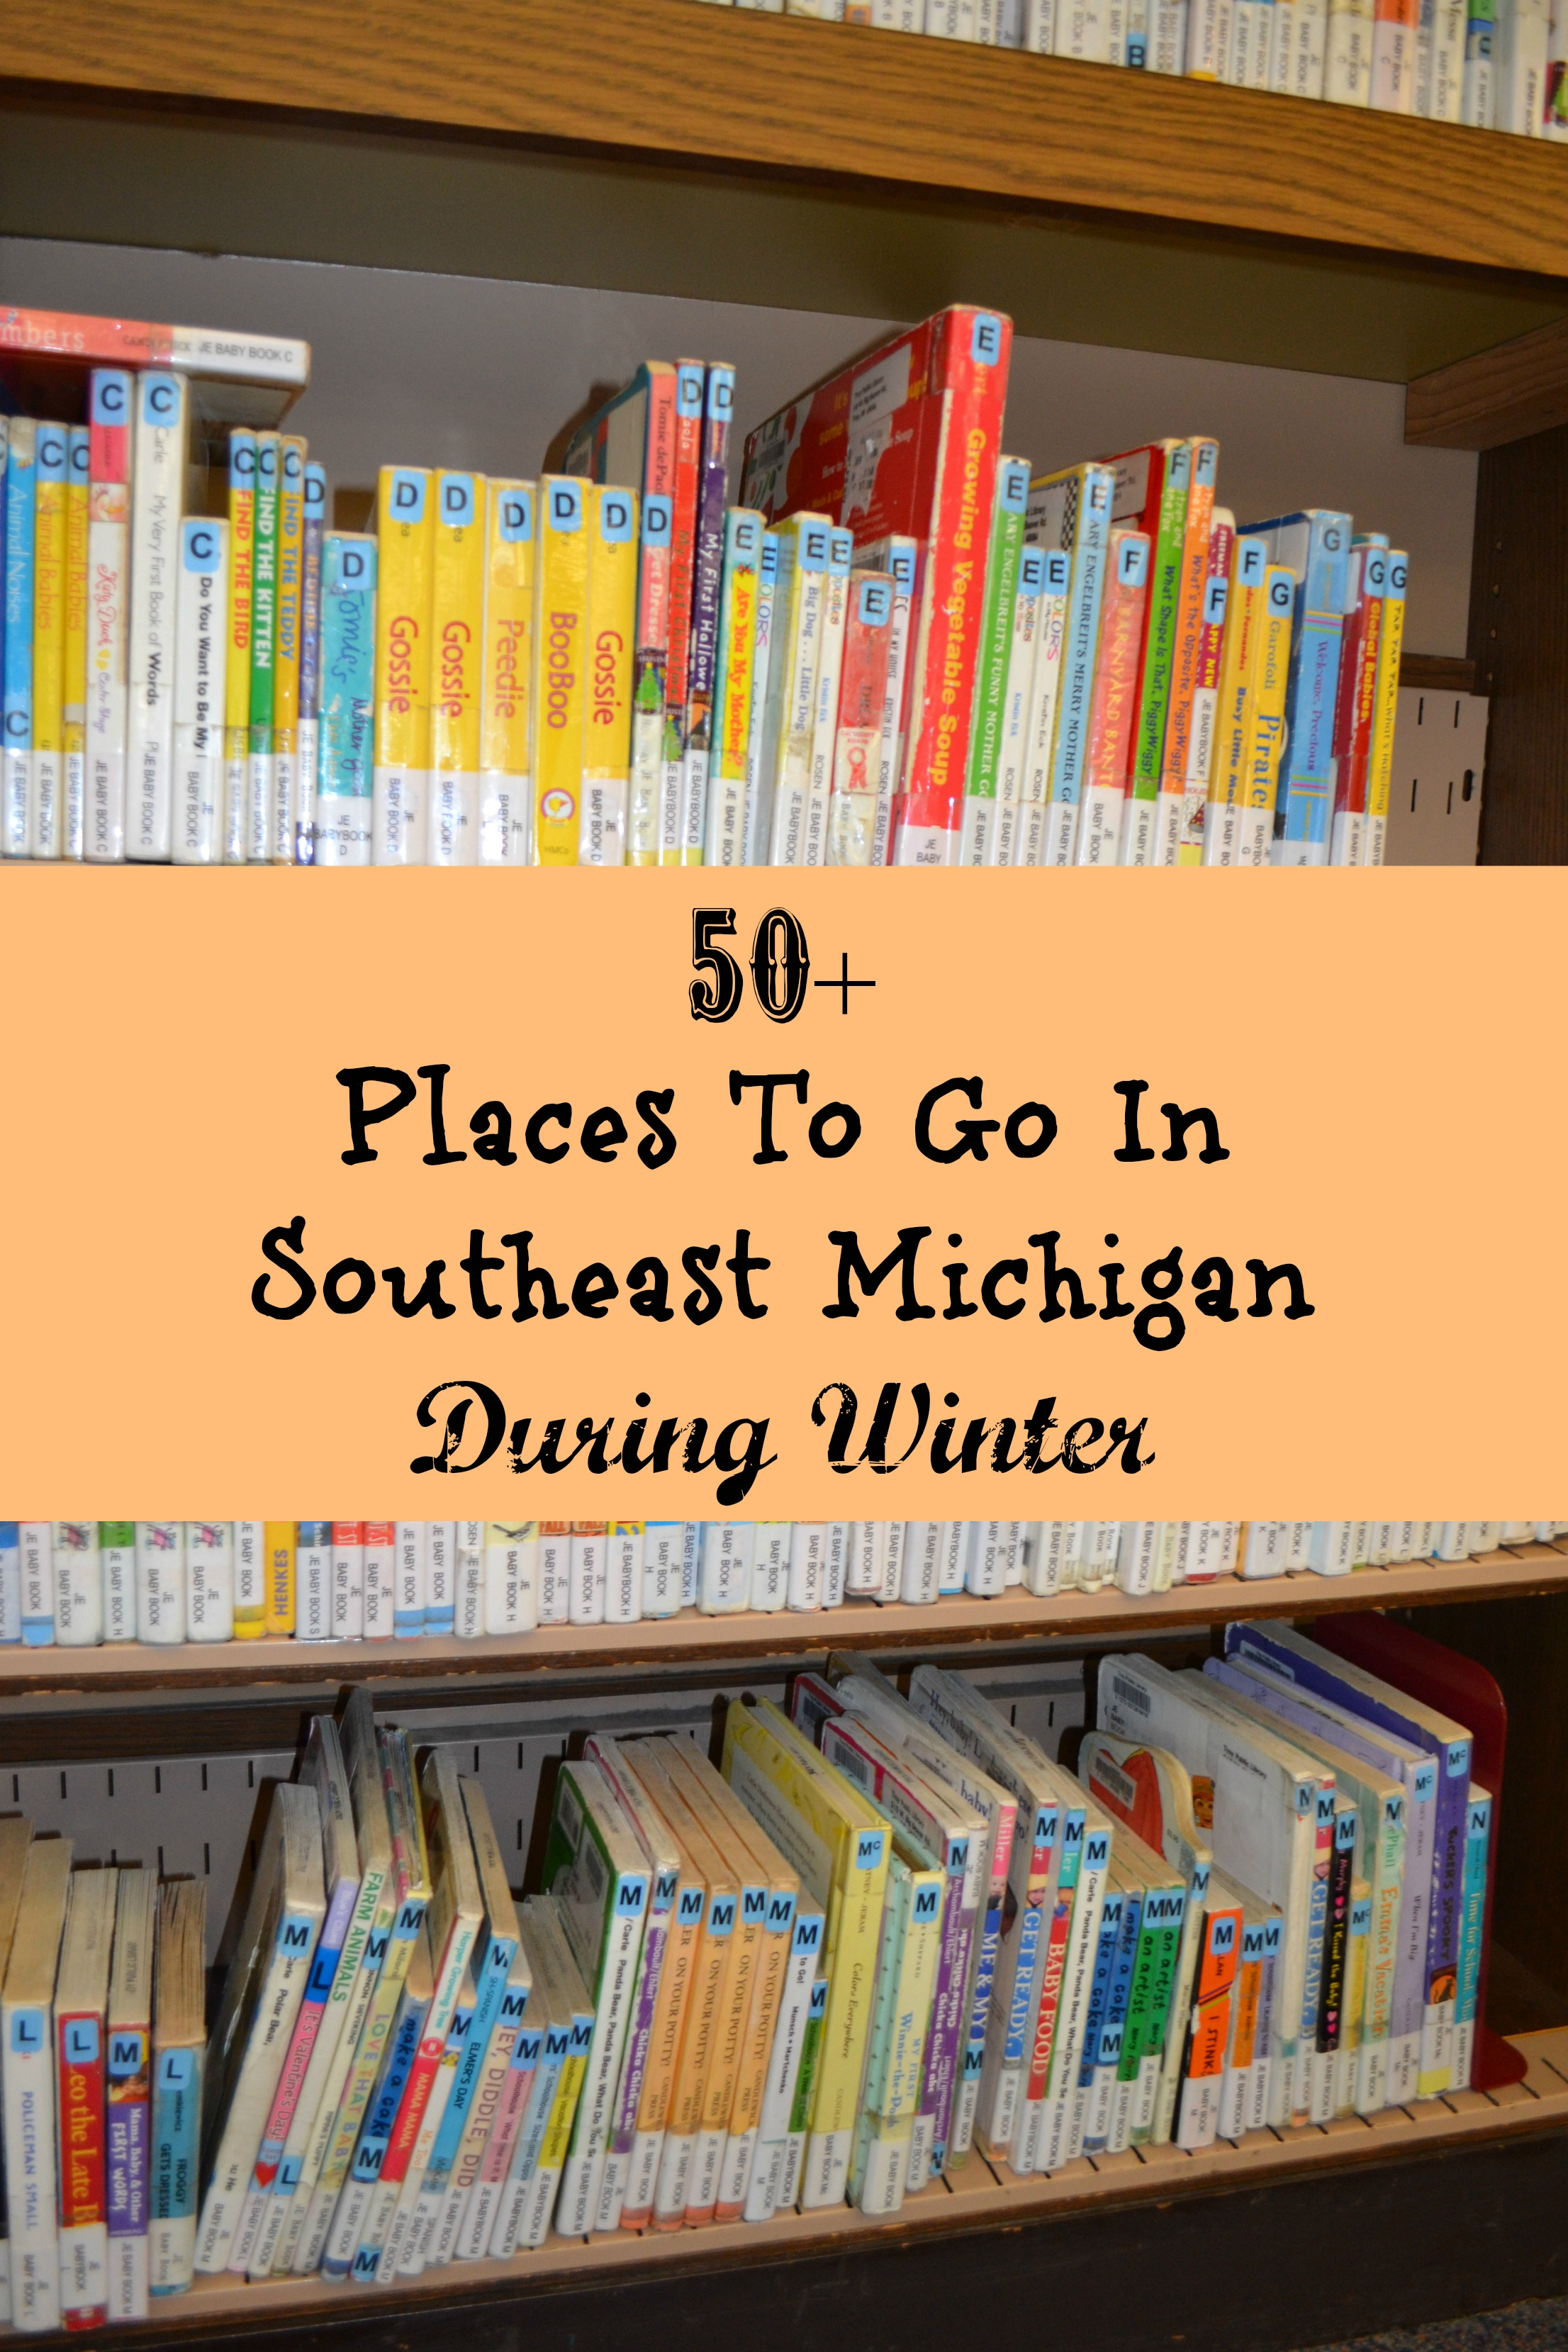 50+ Ideas for Places To Go With Kids In Southeast Michigan During Winter